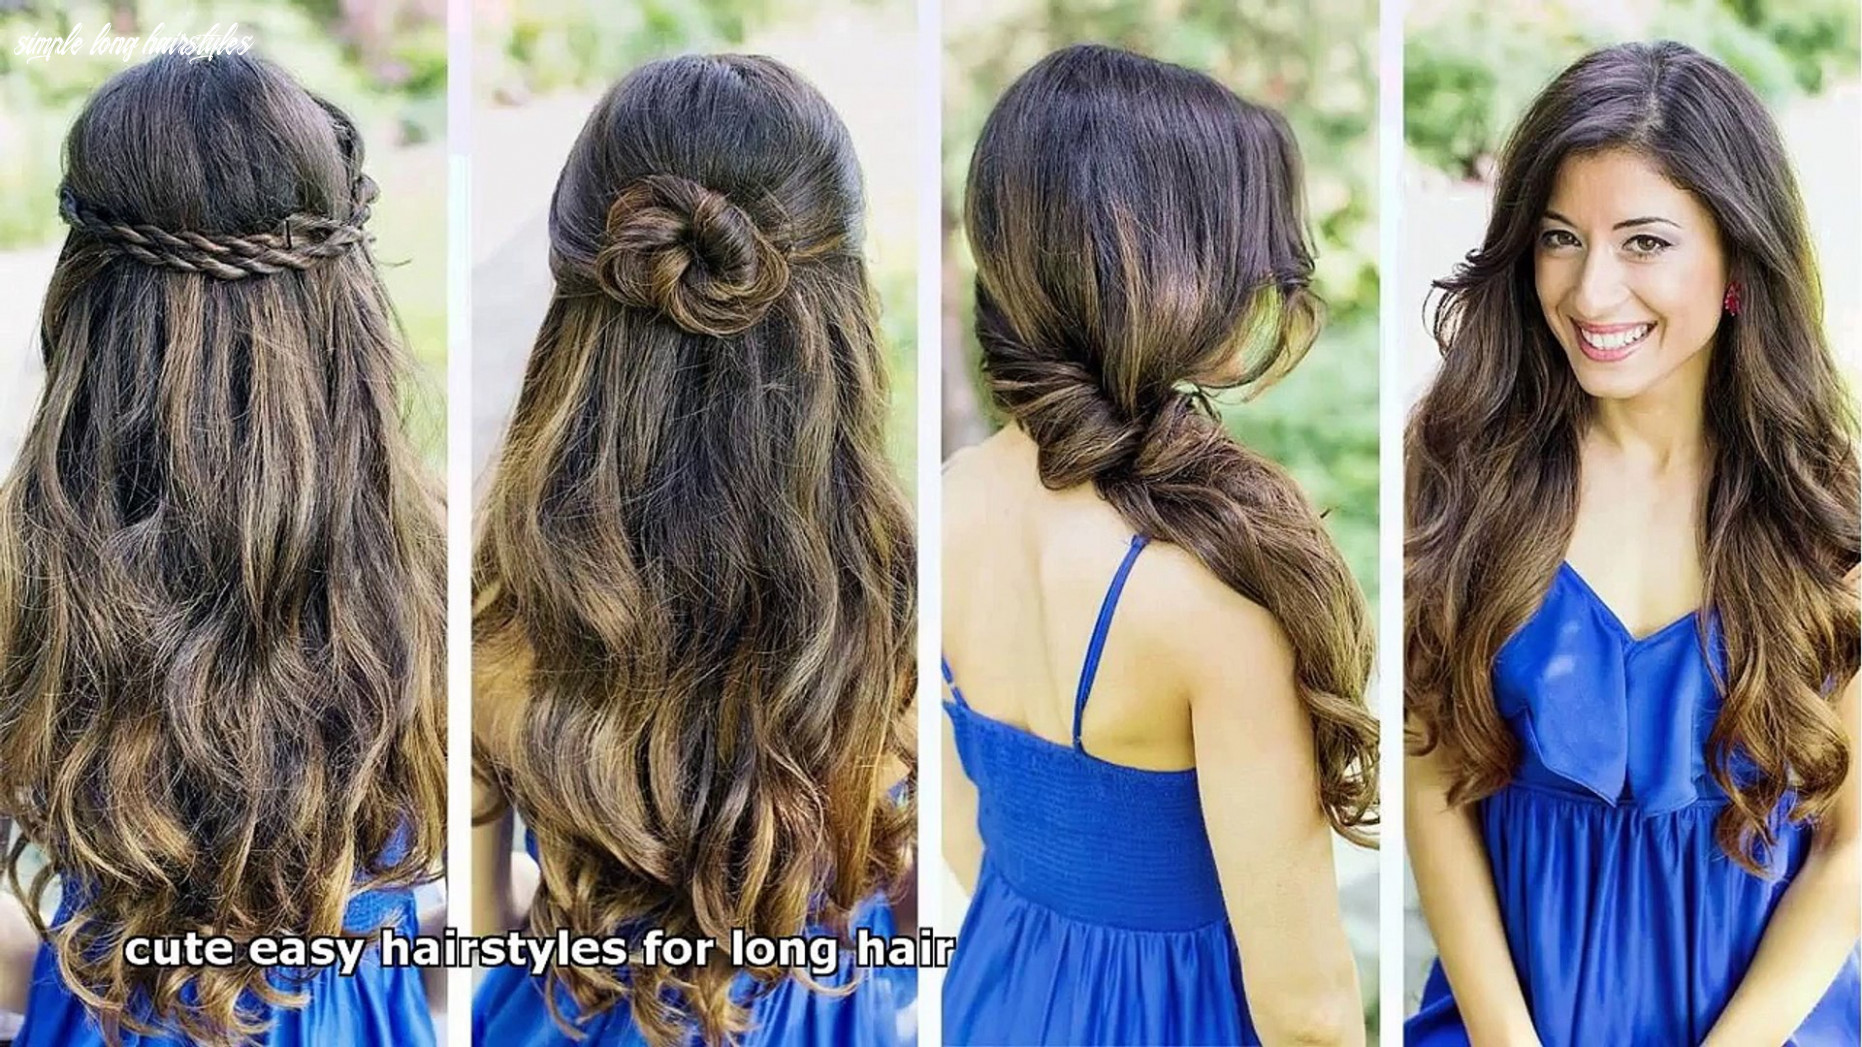 Cute easy hairstyles for long hair video dailymotion simple long hairstyles